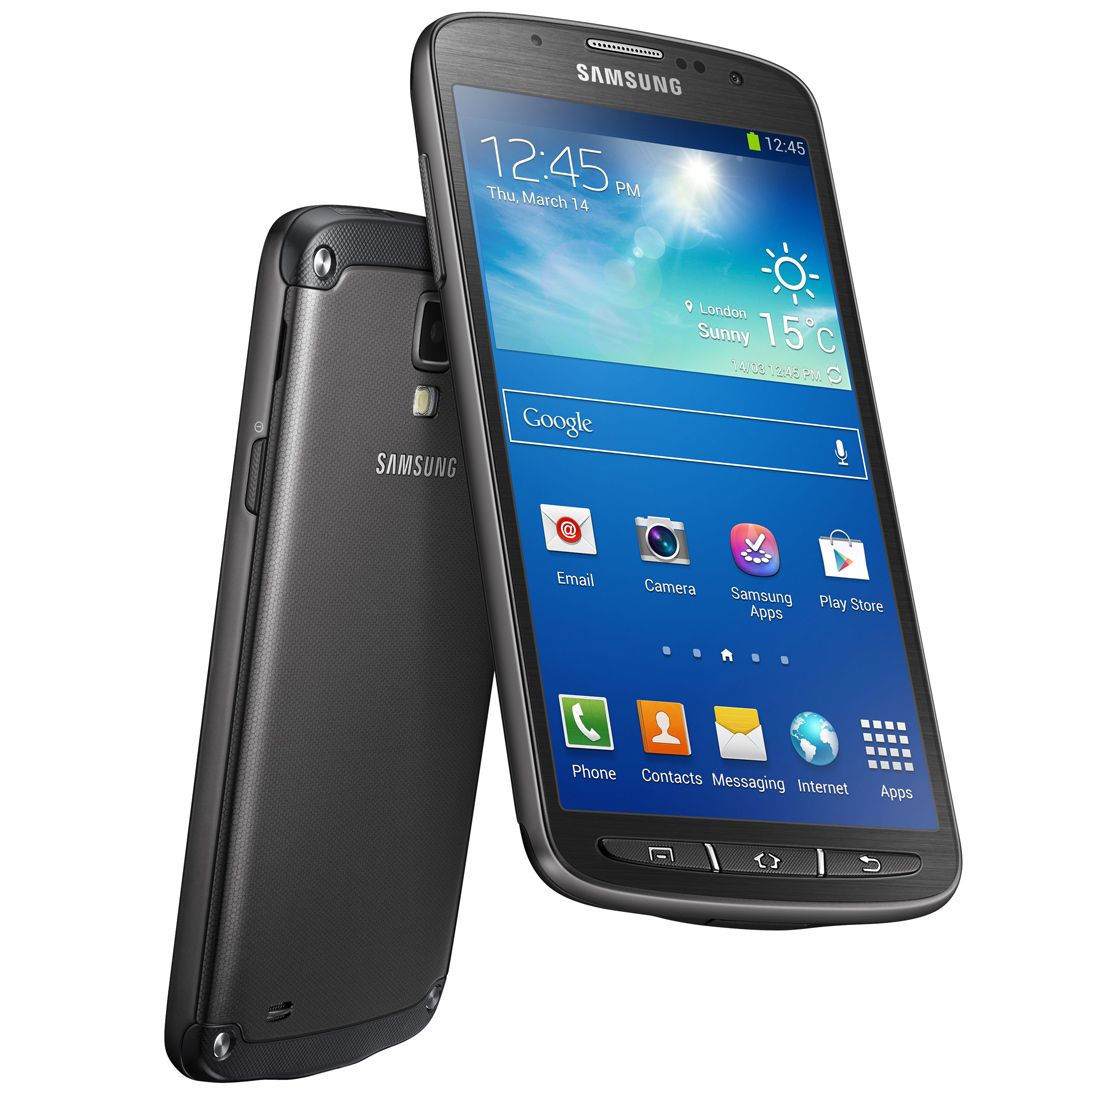 separation shoes 9ea5f ea464 The Galaxy S4 Active: A Rugged, Waterproof Phone Built For Adventure ...